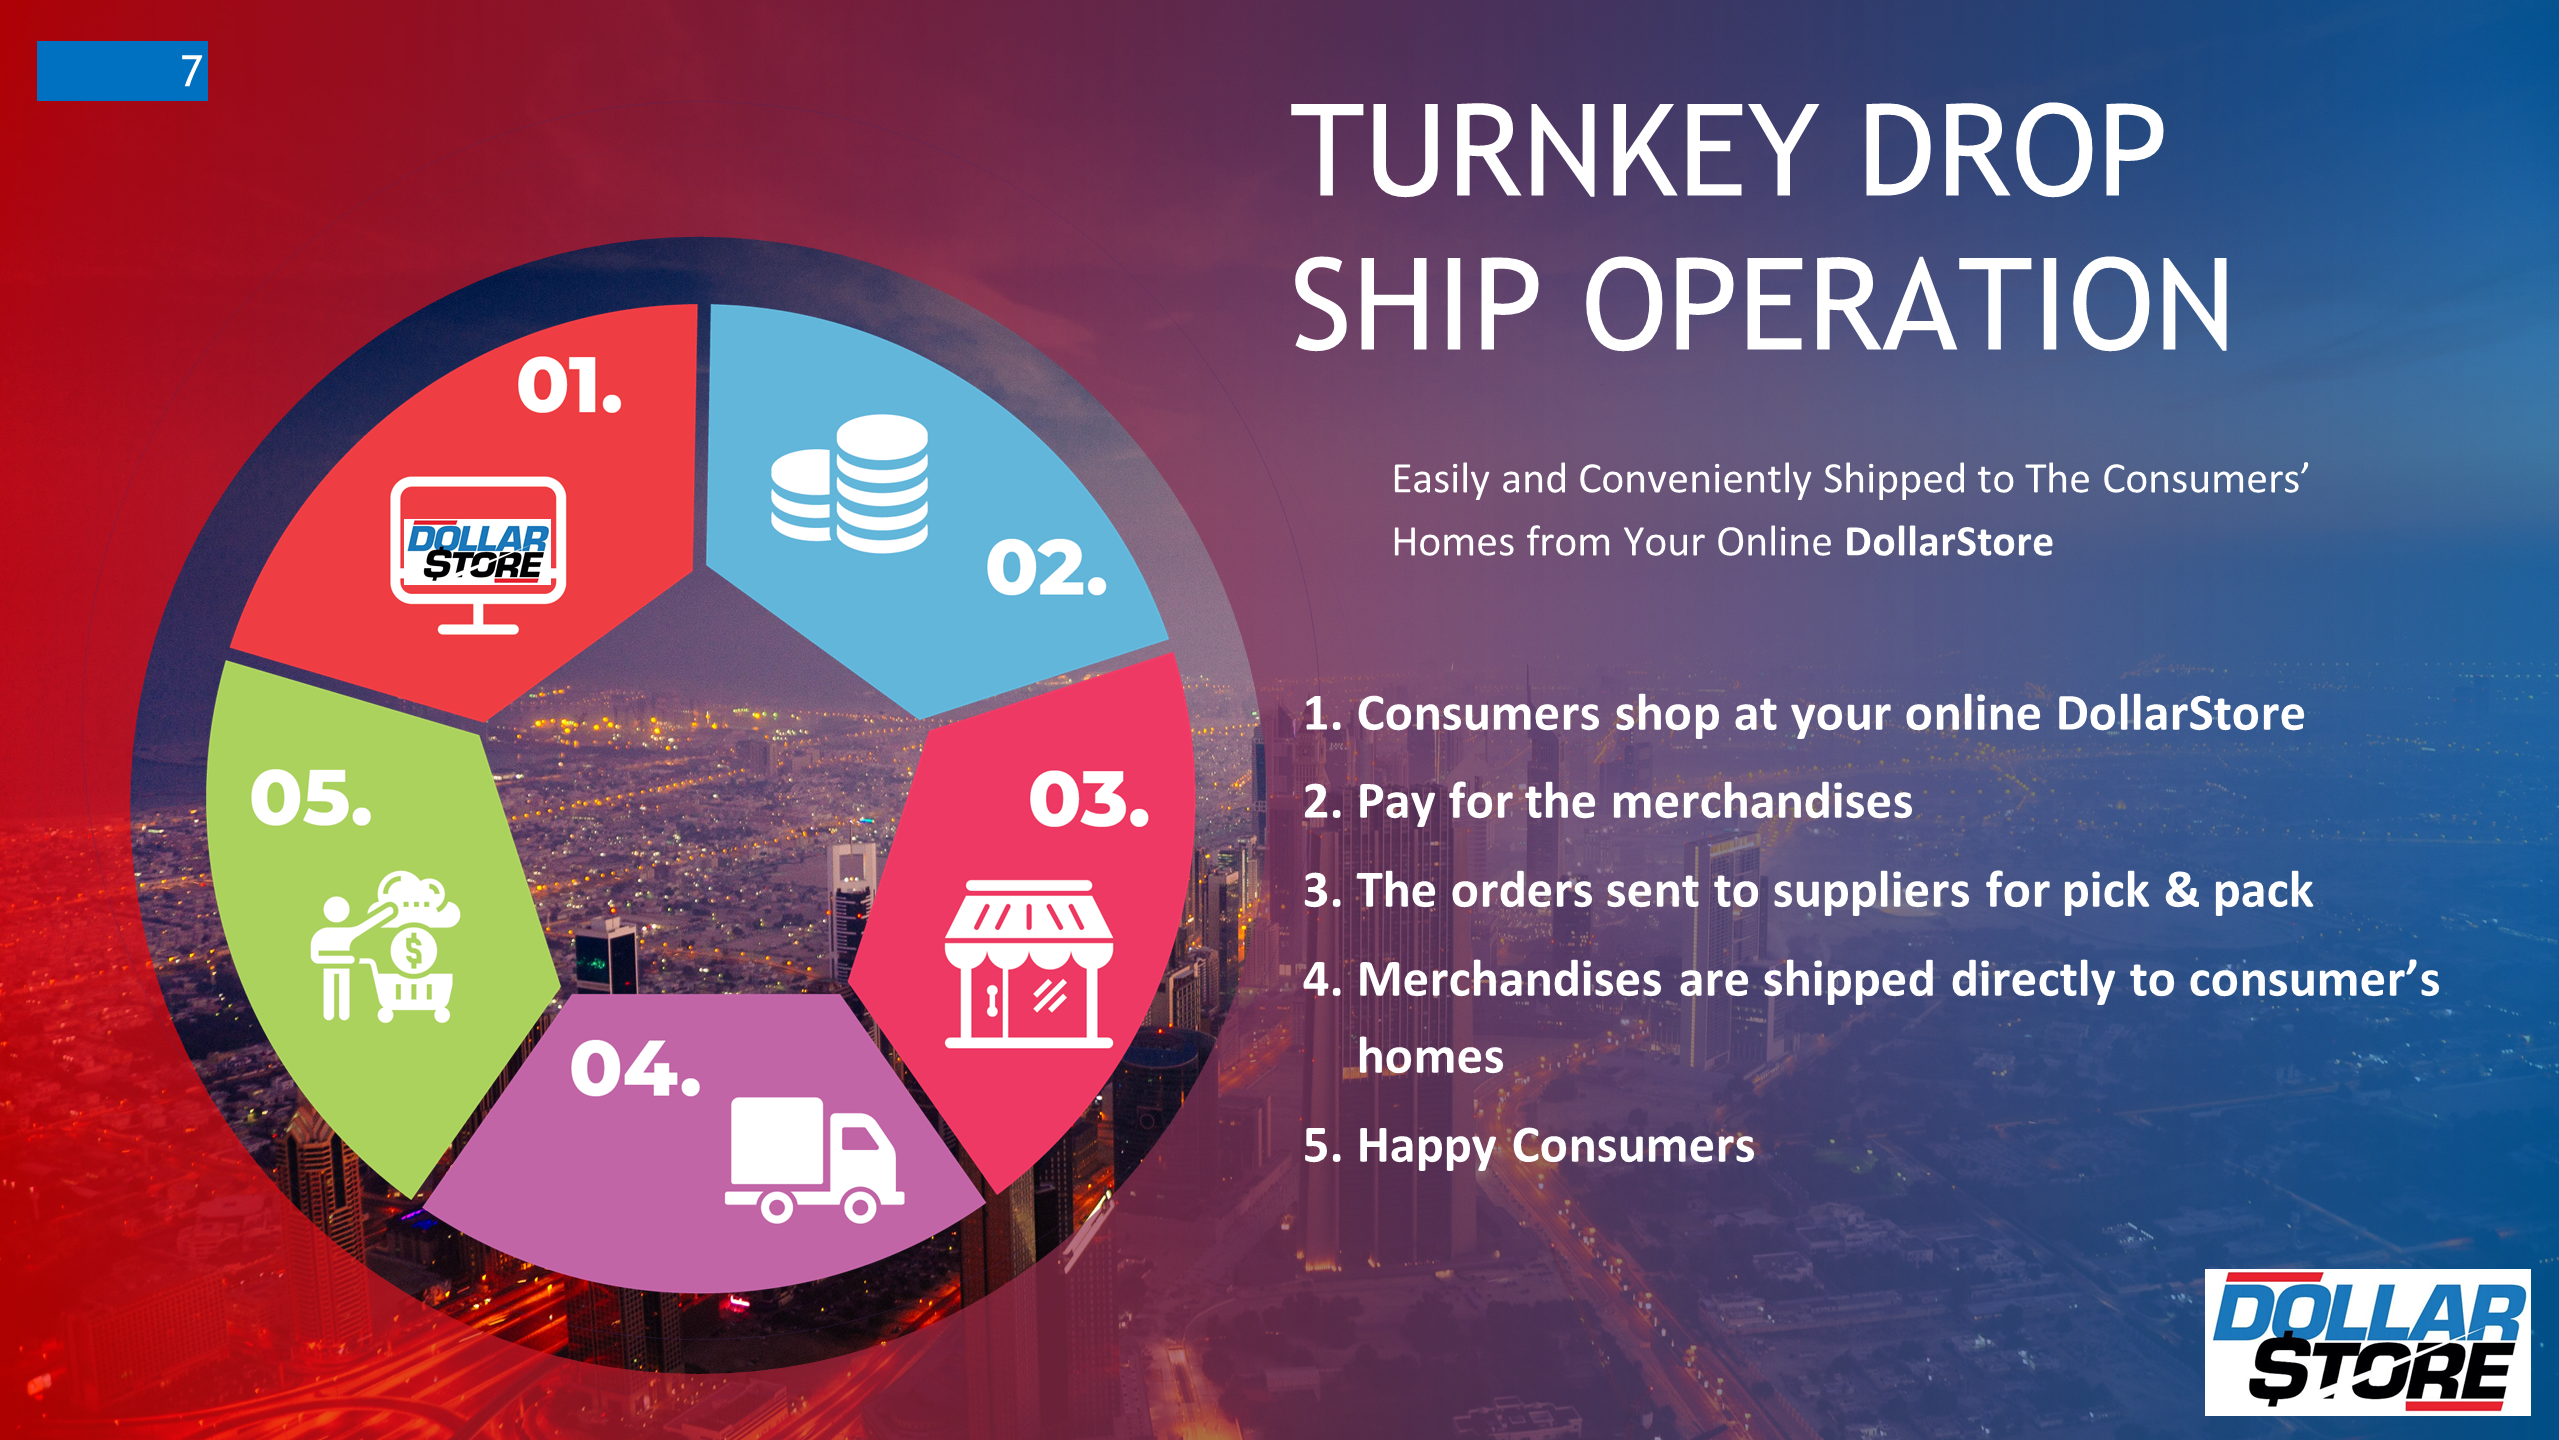 Trunkey Drop Ship Operation with DollarStore